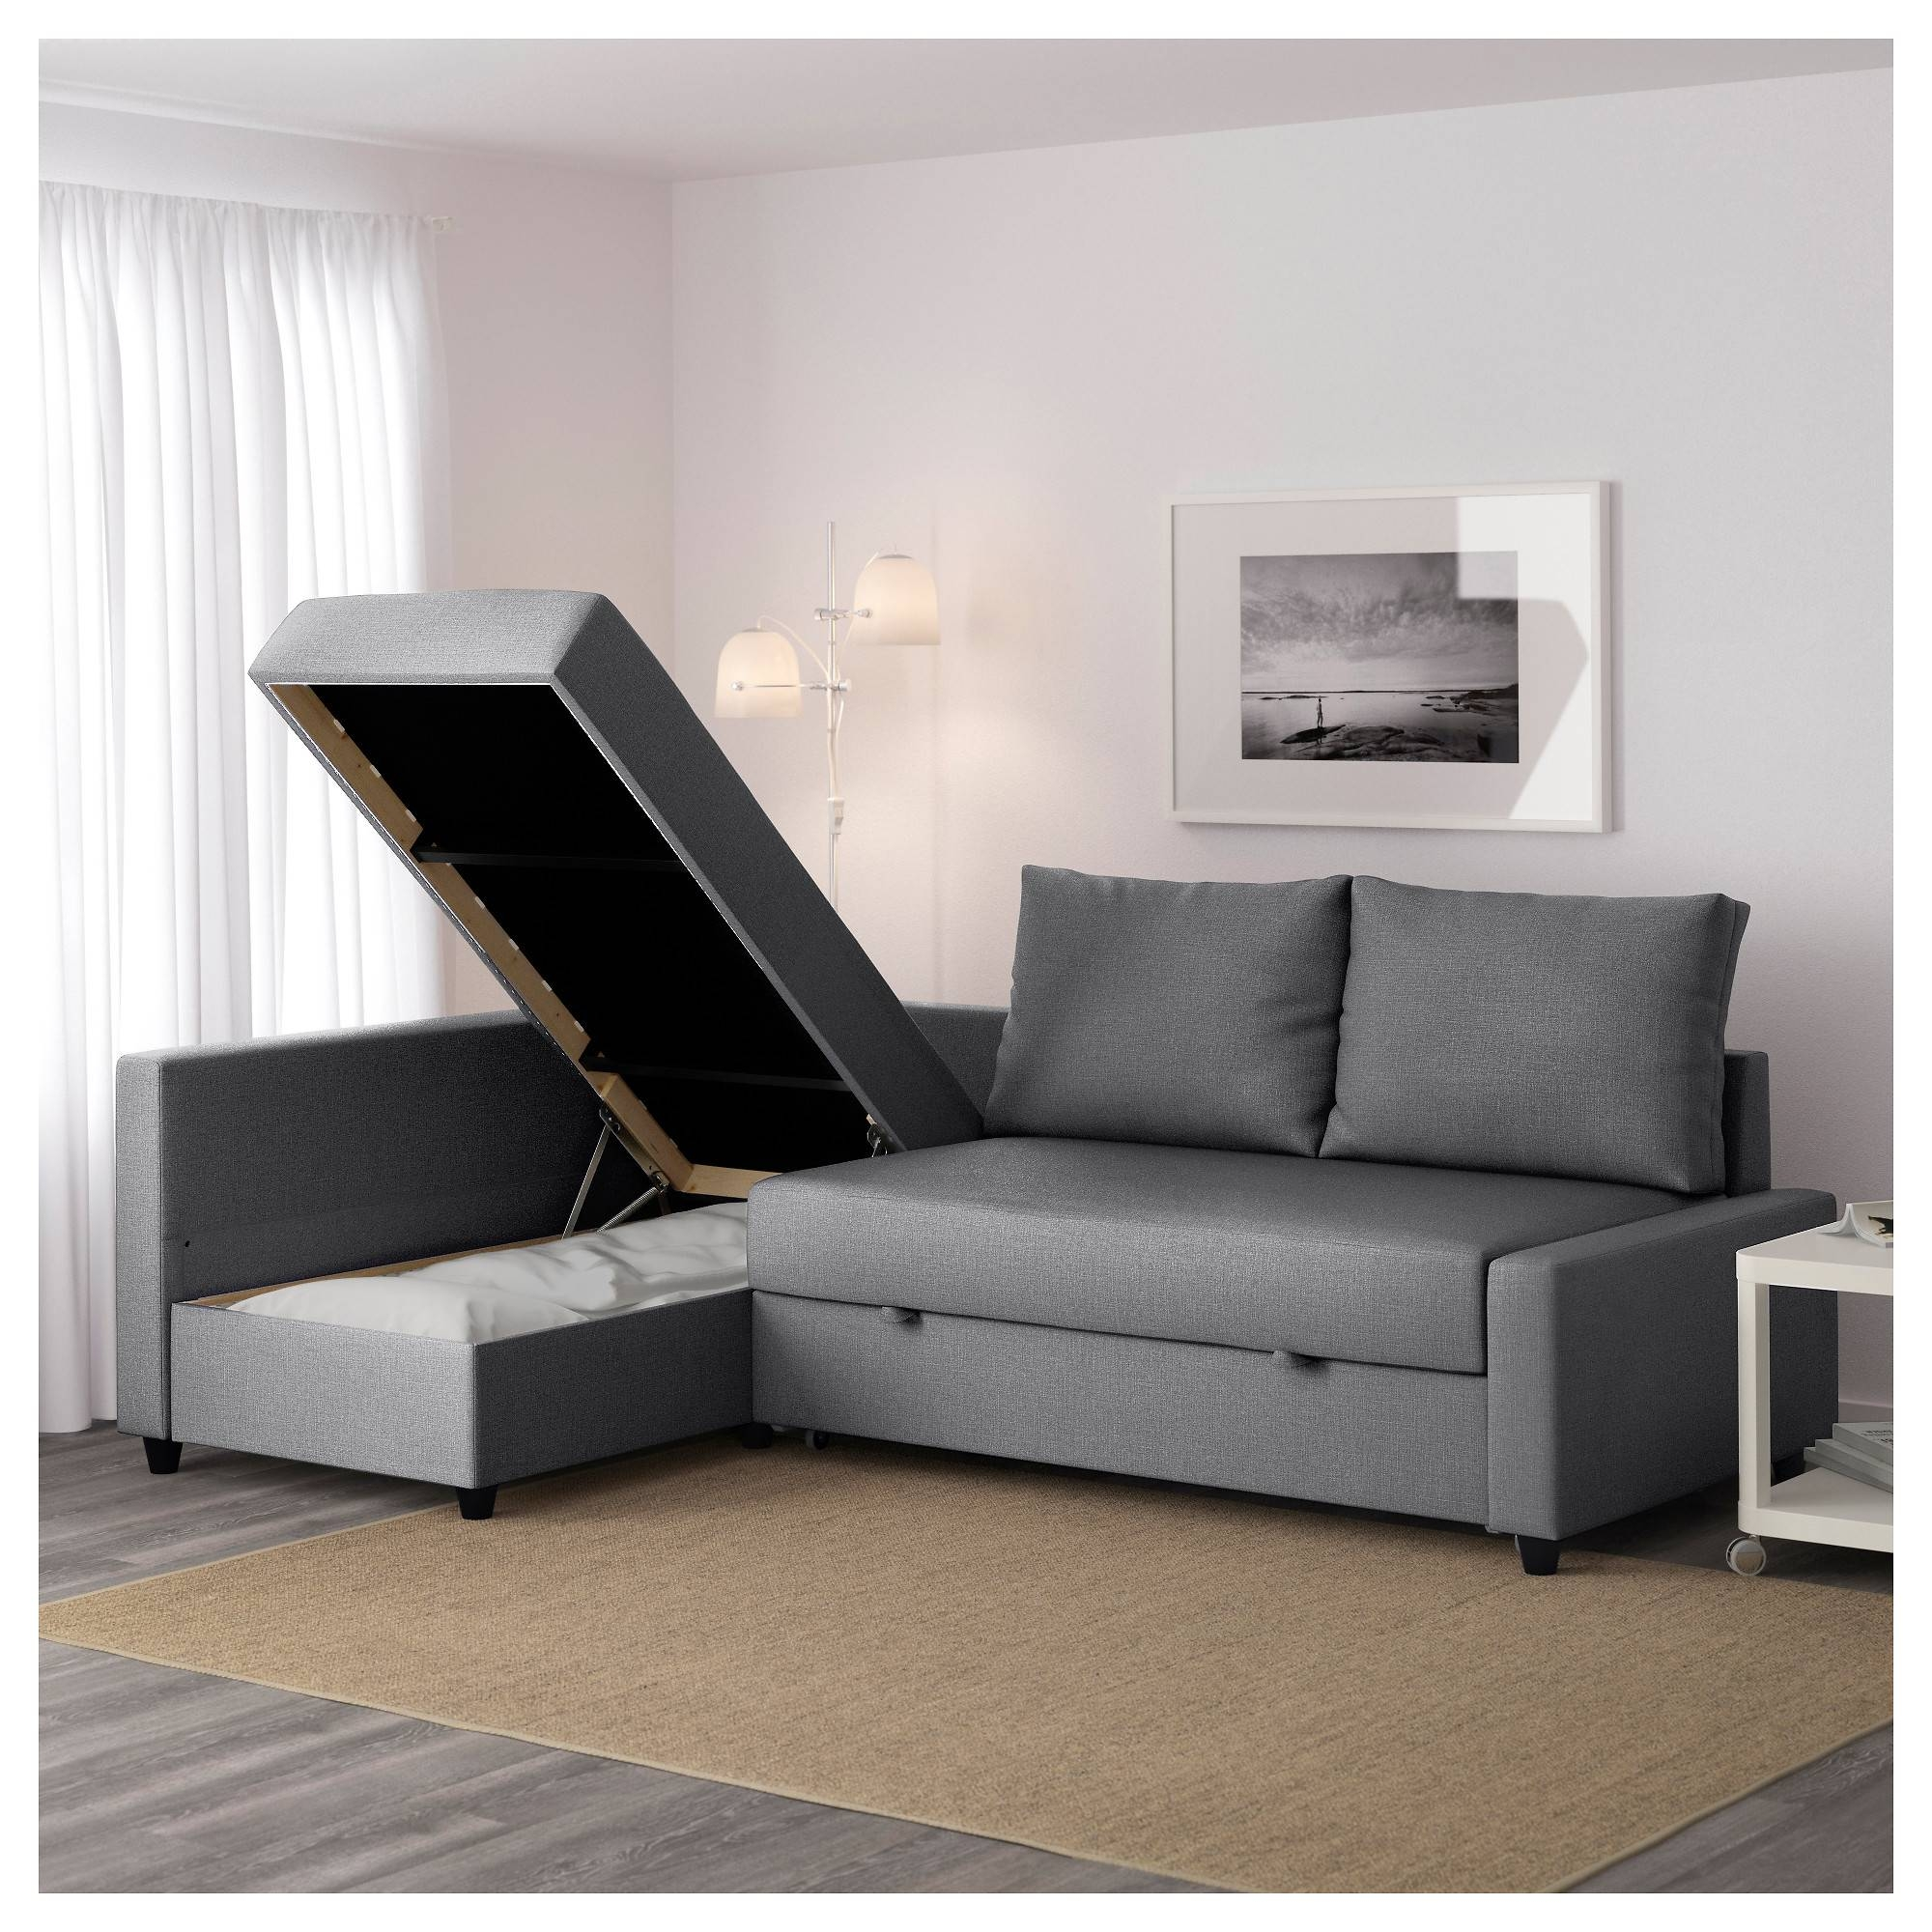 Friheten Corner Sofa-Bed With Storage Skiftebo Dark Grey - Ikea pertaining to Ikea Storage Sofa Bed (Image 6 of 25)